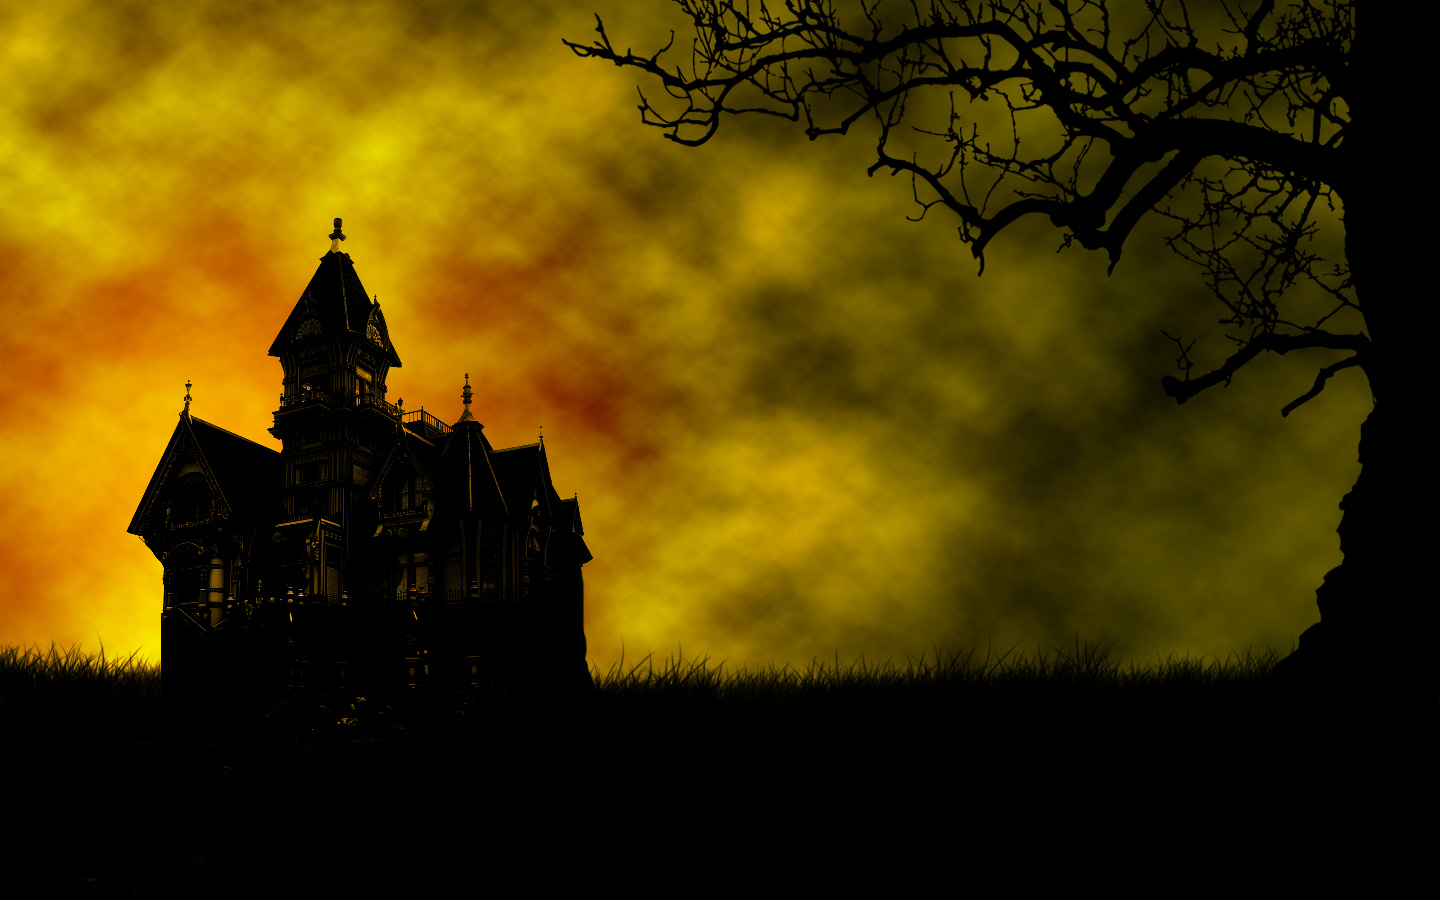 http://2.bp.blogspot.com/_RqE-j9A3jqU/TMjrERpVvXI/AAAAAAAAAF4/YlFaZwCD6_c/s1600/Haunted-background-664177.jpeg